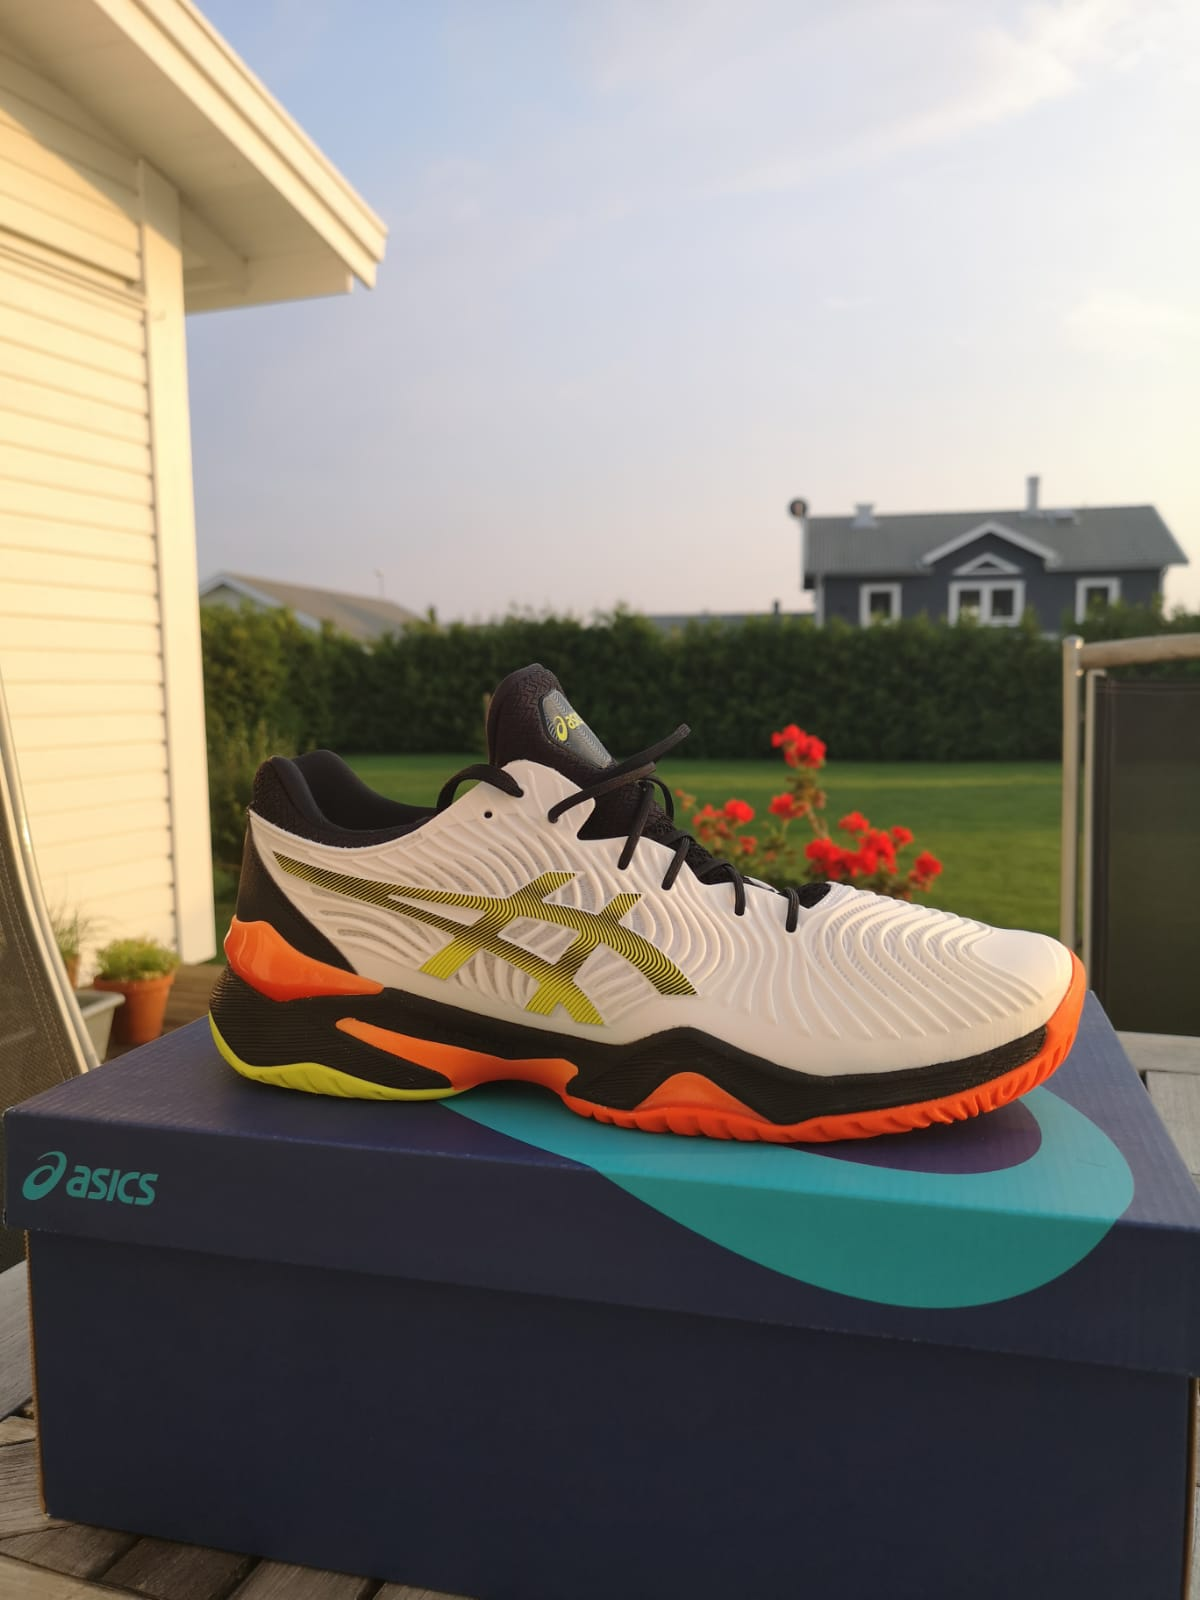 Asics Court FF 2 Tennis Shoe Review